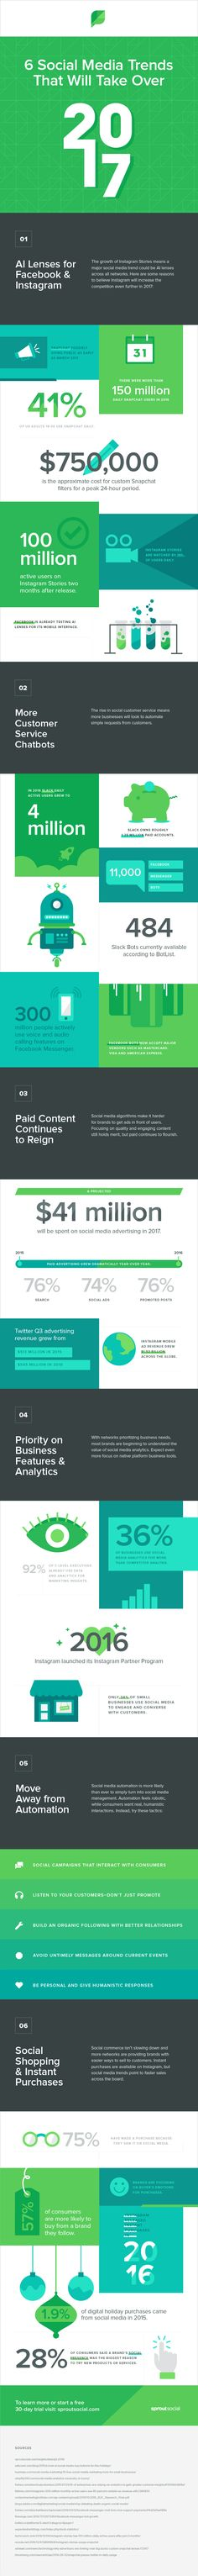 6 #SocialMedia Trends That Will Take Over in 2017 [Infographic]